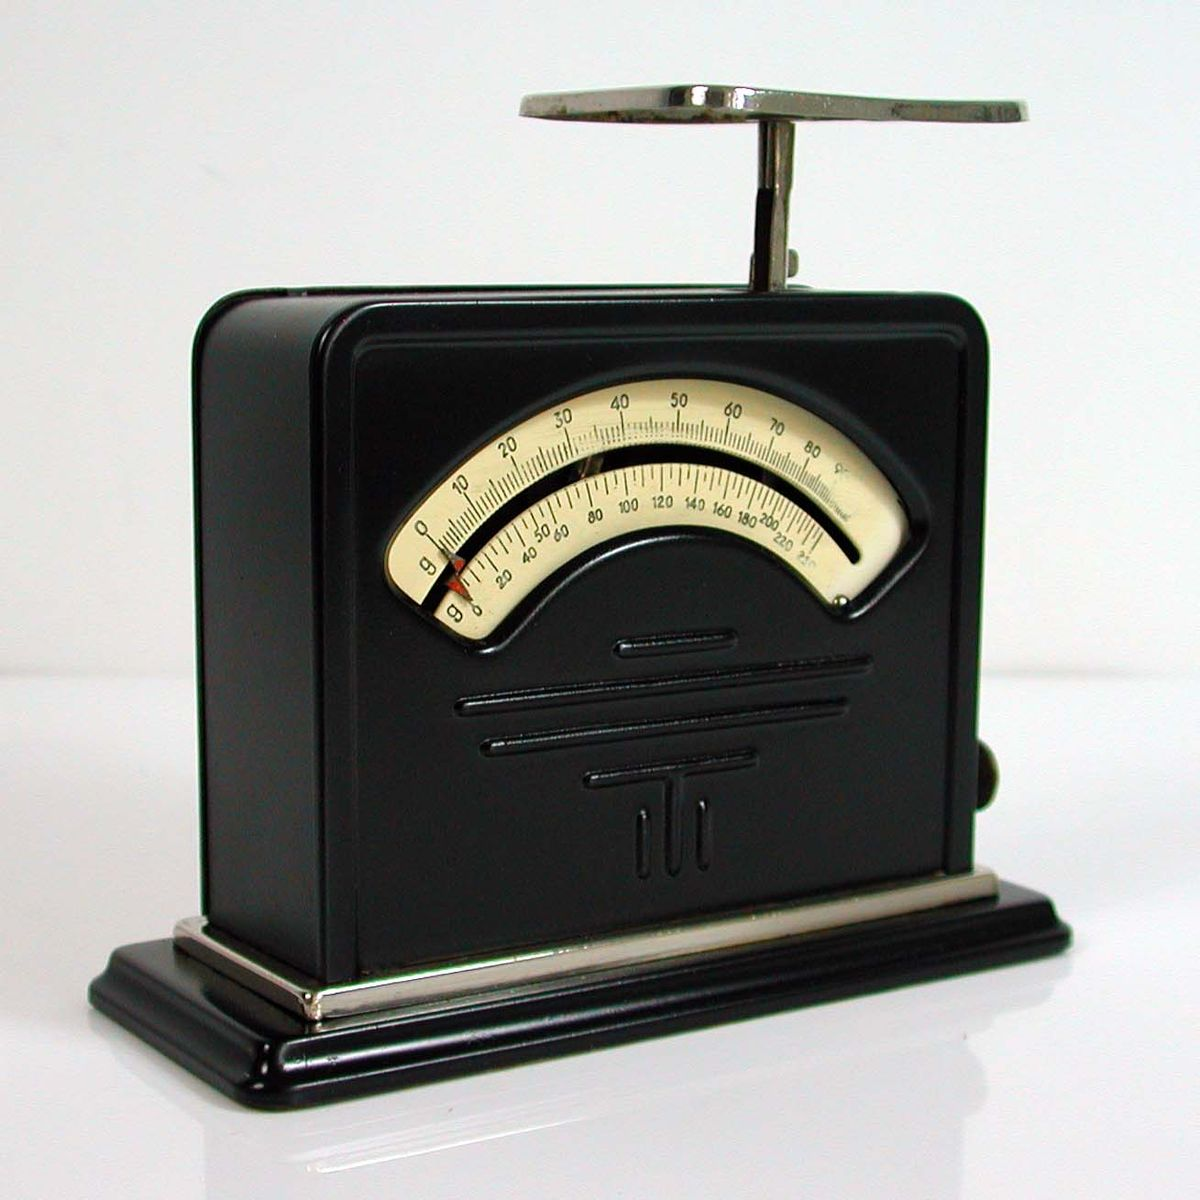 bauhaus letter scale by jakob maul 1930s for sale at pamono With letter scales for sale